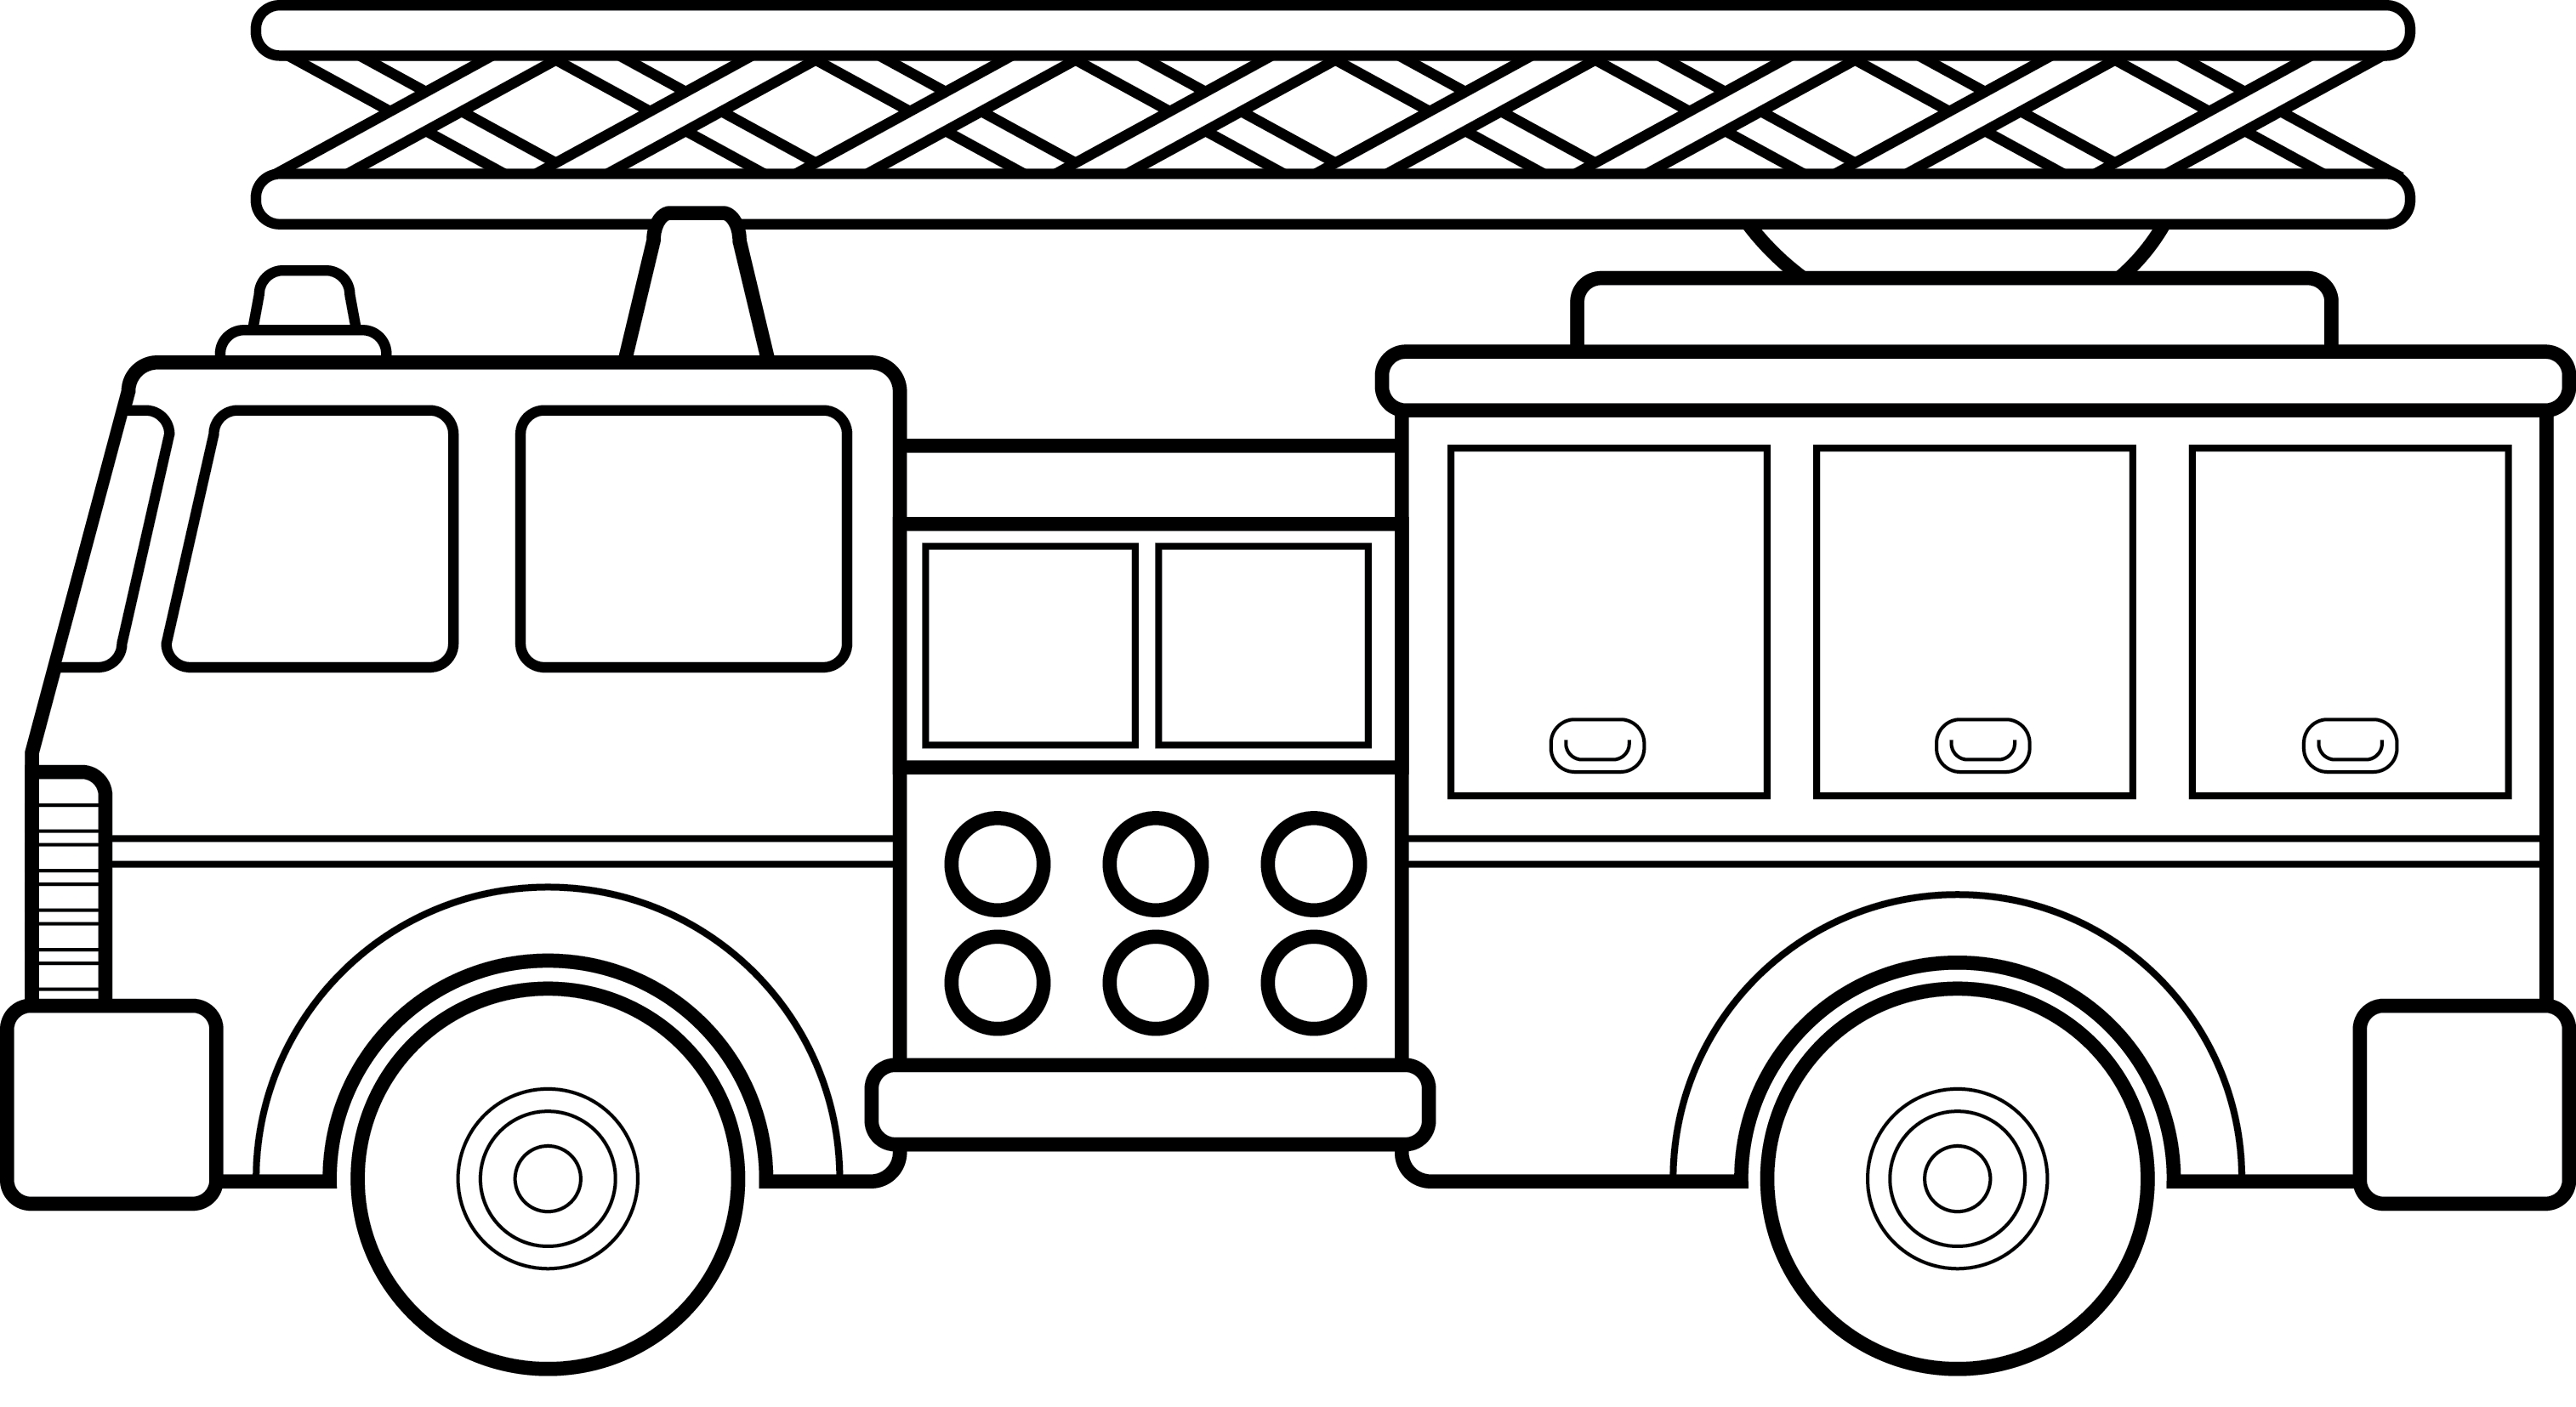 Fire truck cars and trucks clip art black and white car 2 top